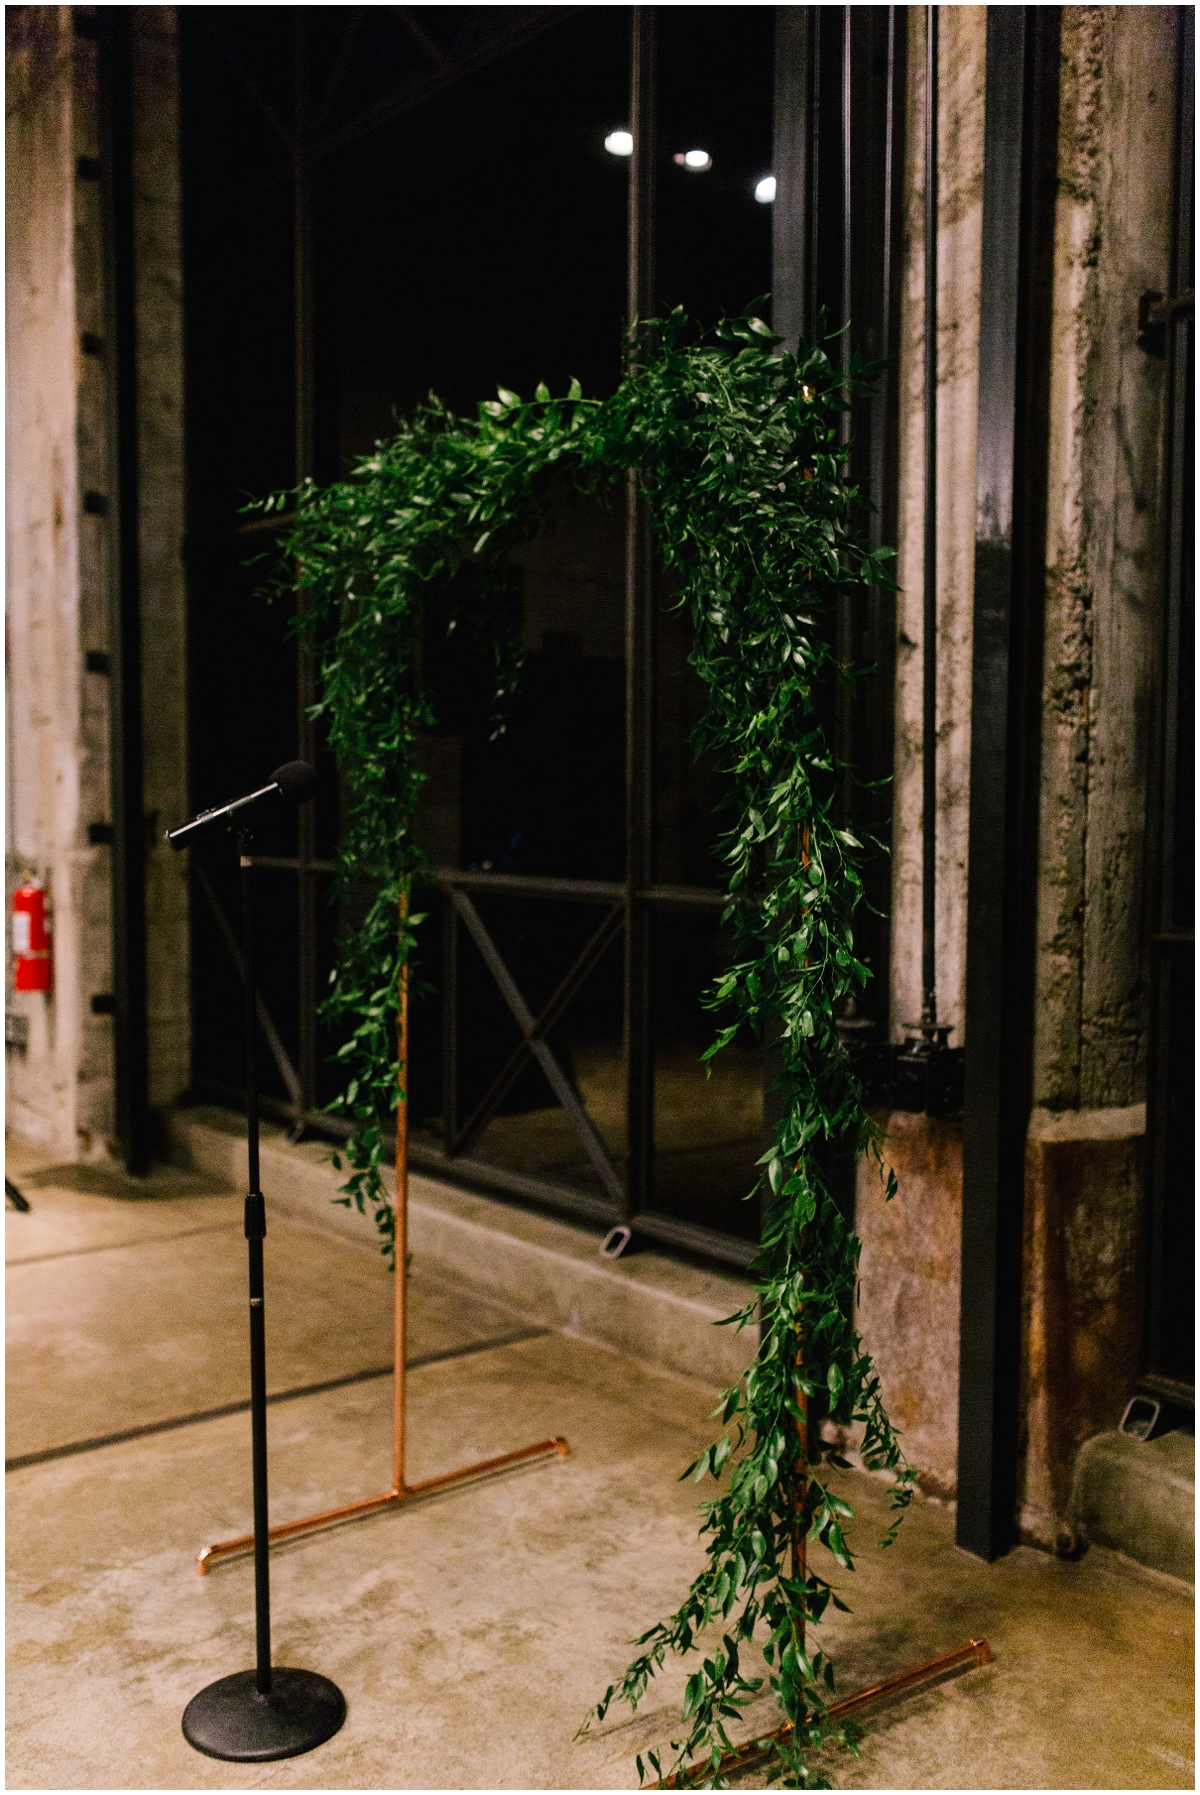 Garland draped ceremony arch, Mill City Museum wedding planned by MN Wedding Planner, Rosetree Weddings & Events